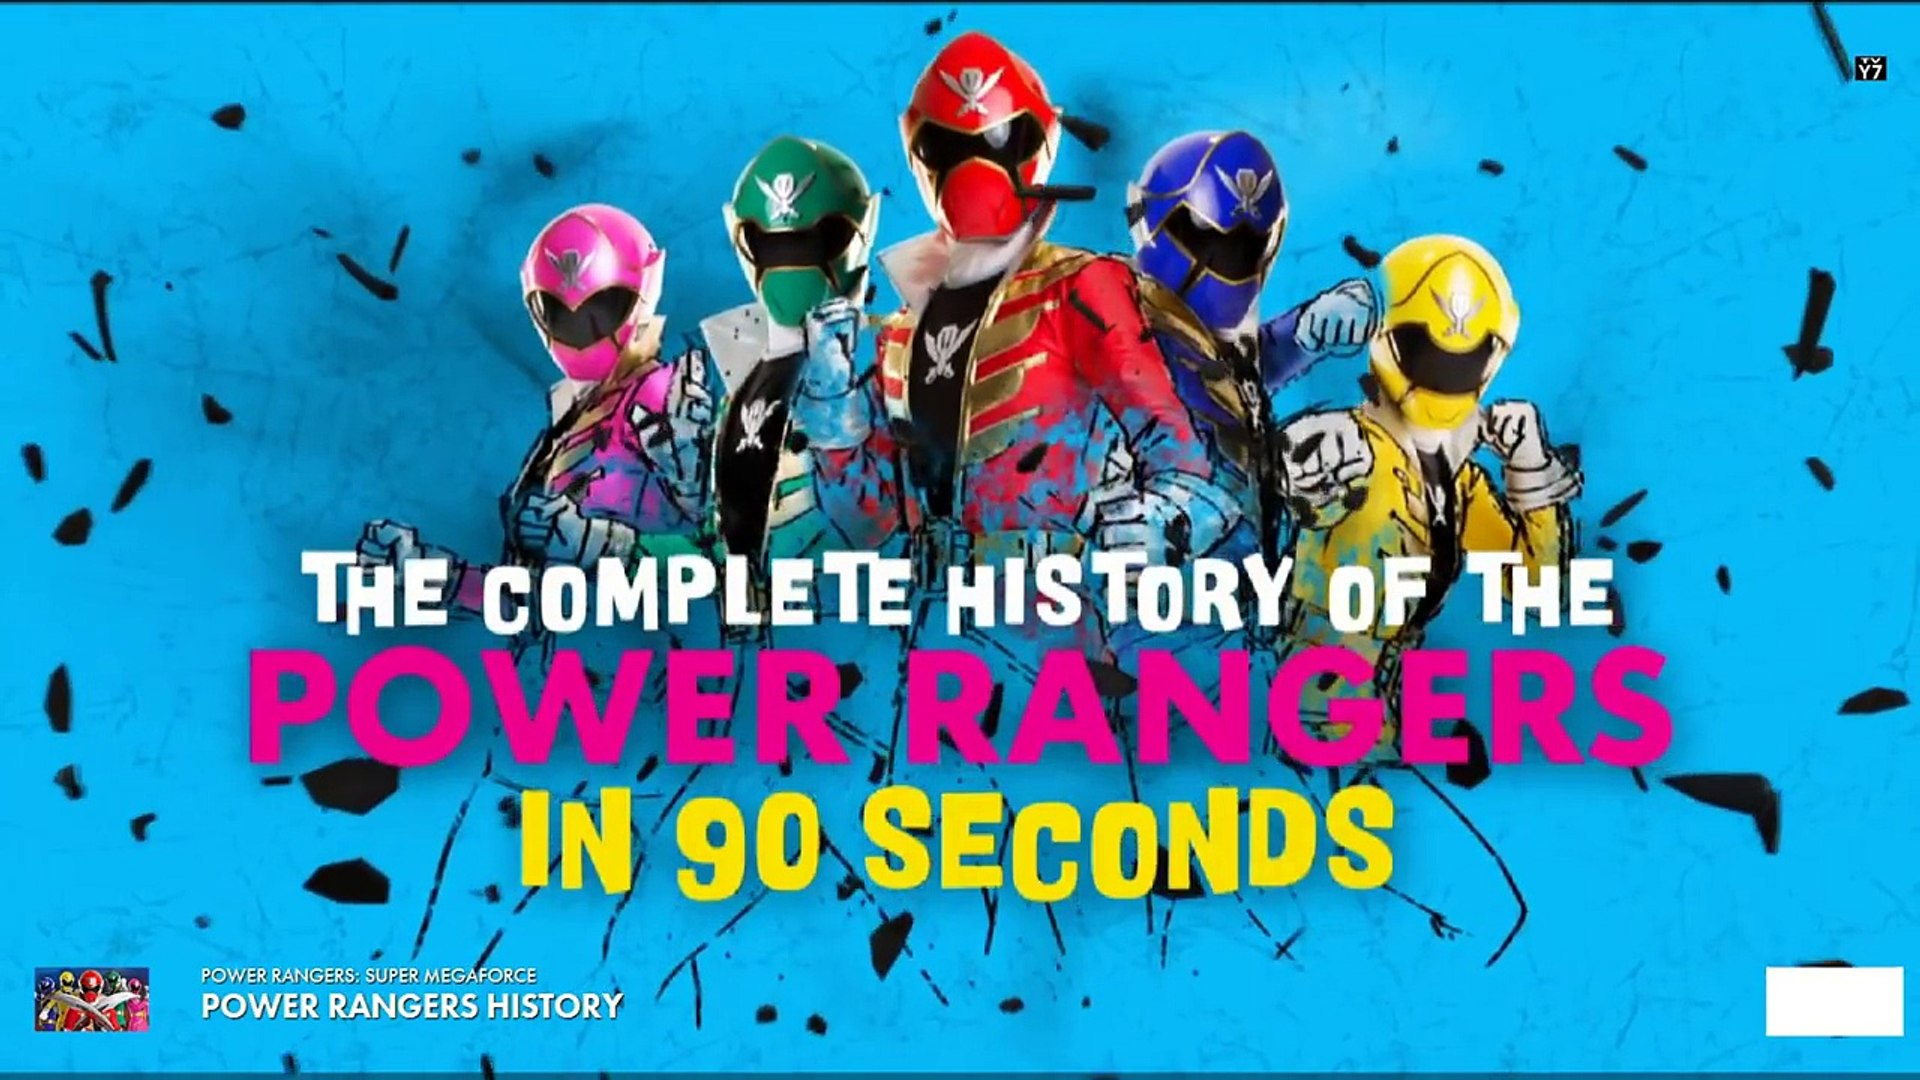 Power Rangers Super Megaforce - Power Rangers History-twjoulDSblE